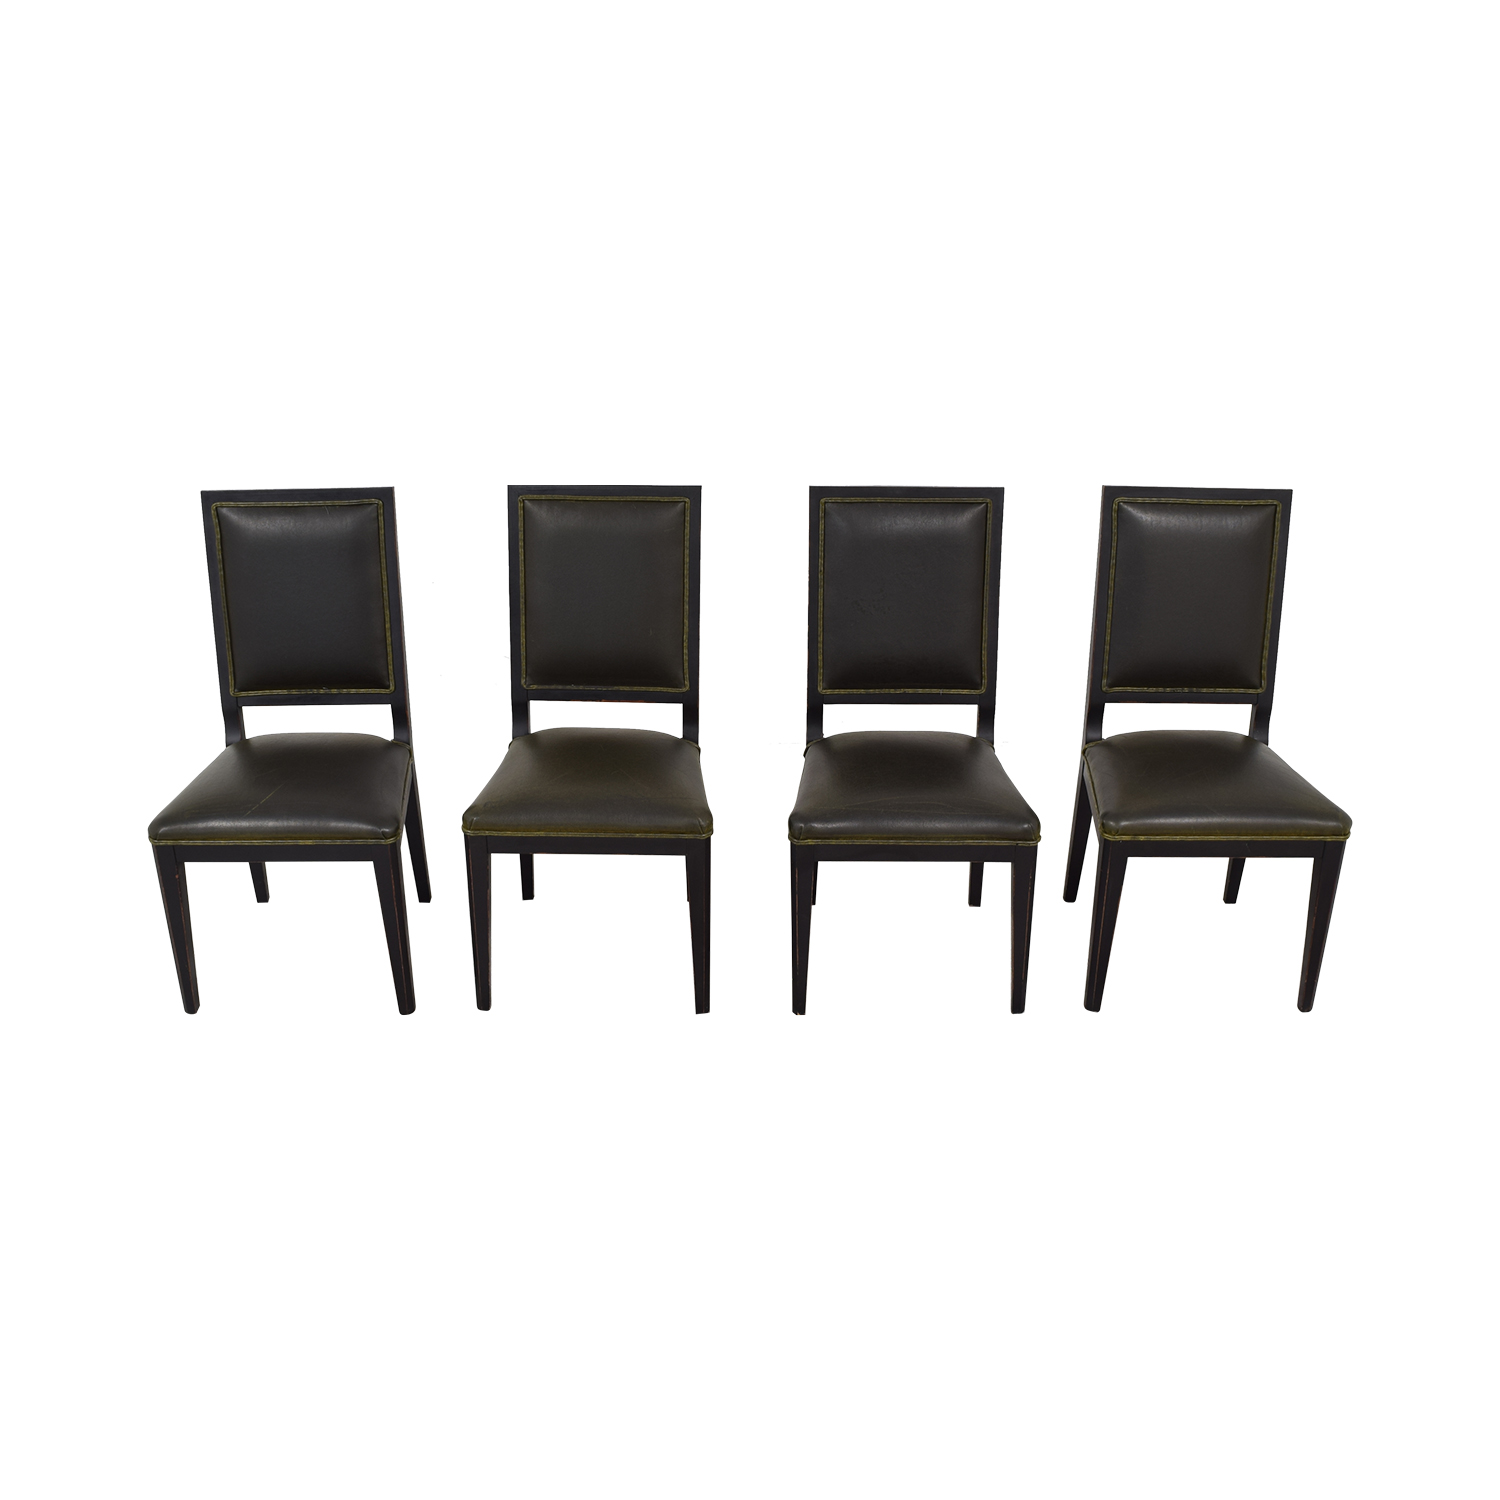 Buying & Design Buying & Design Dining Chairs nyc